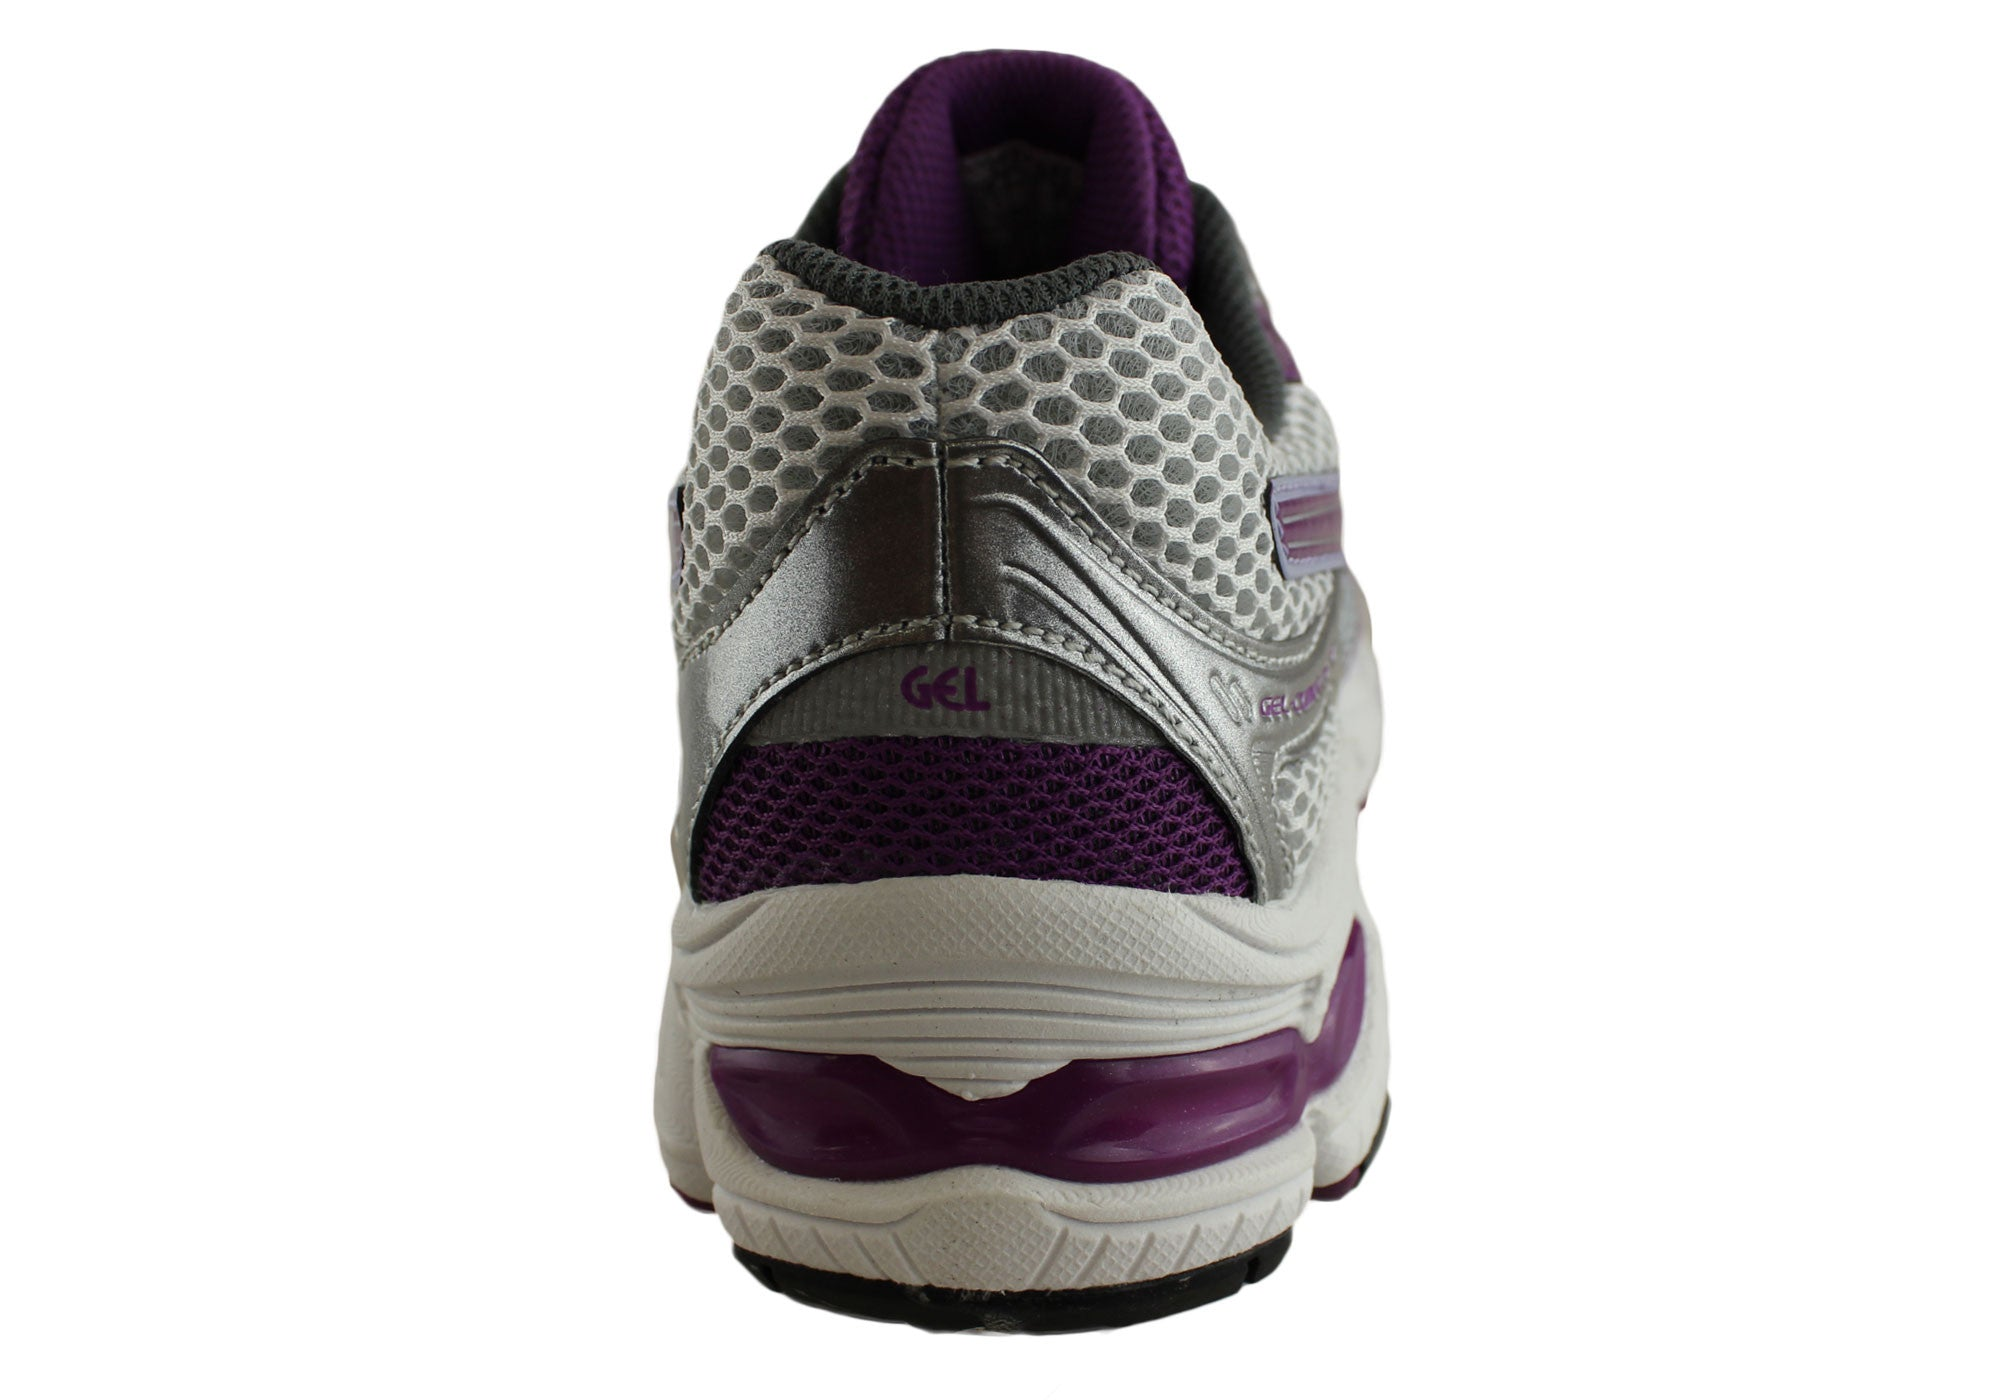 ASICS GEL NIMBUS 13 GS KIDS/GIRLS SHOES